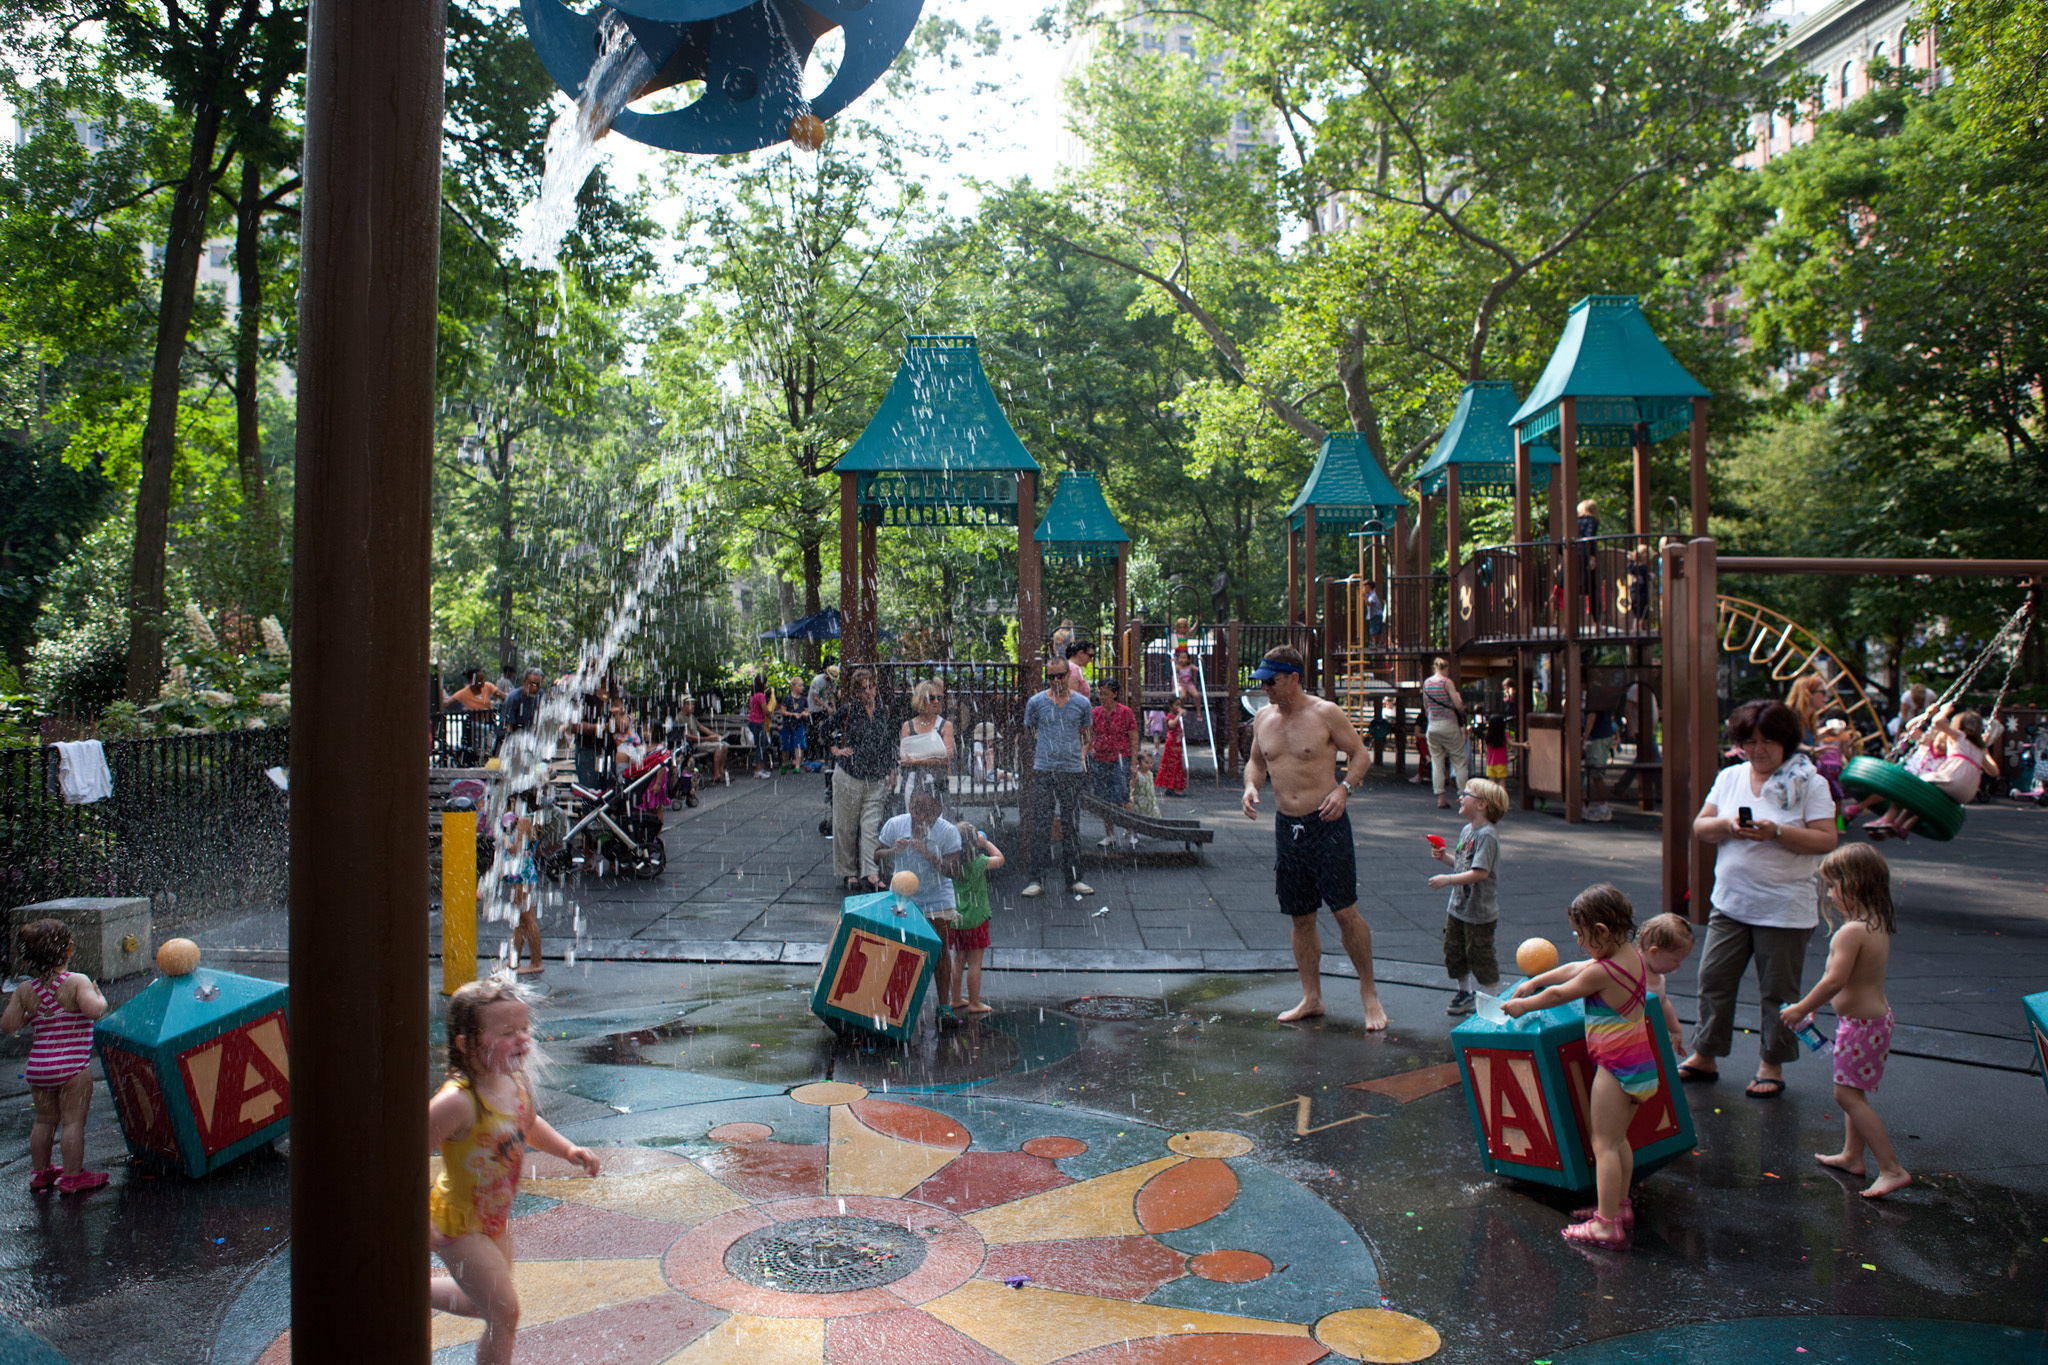 Moira Ann Smith Playground